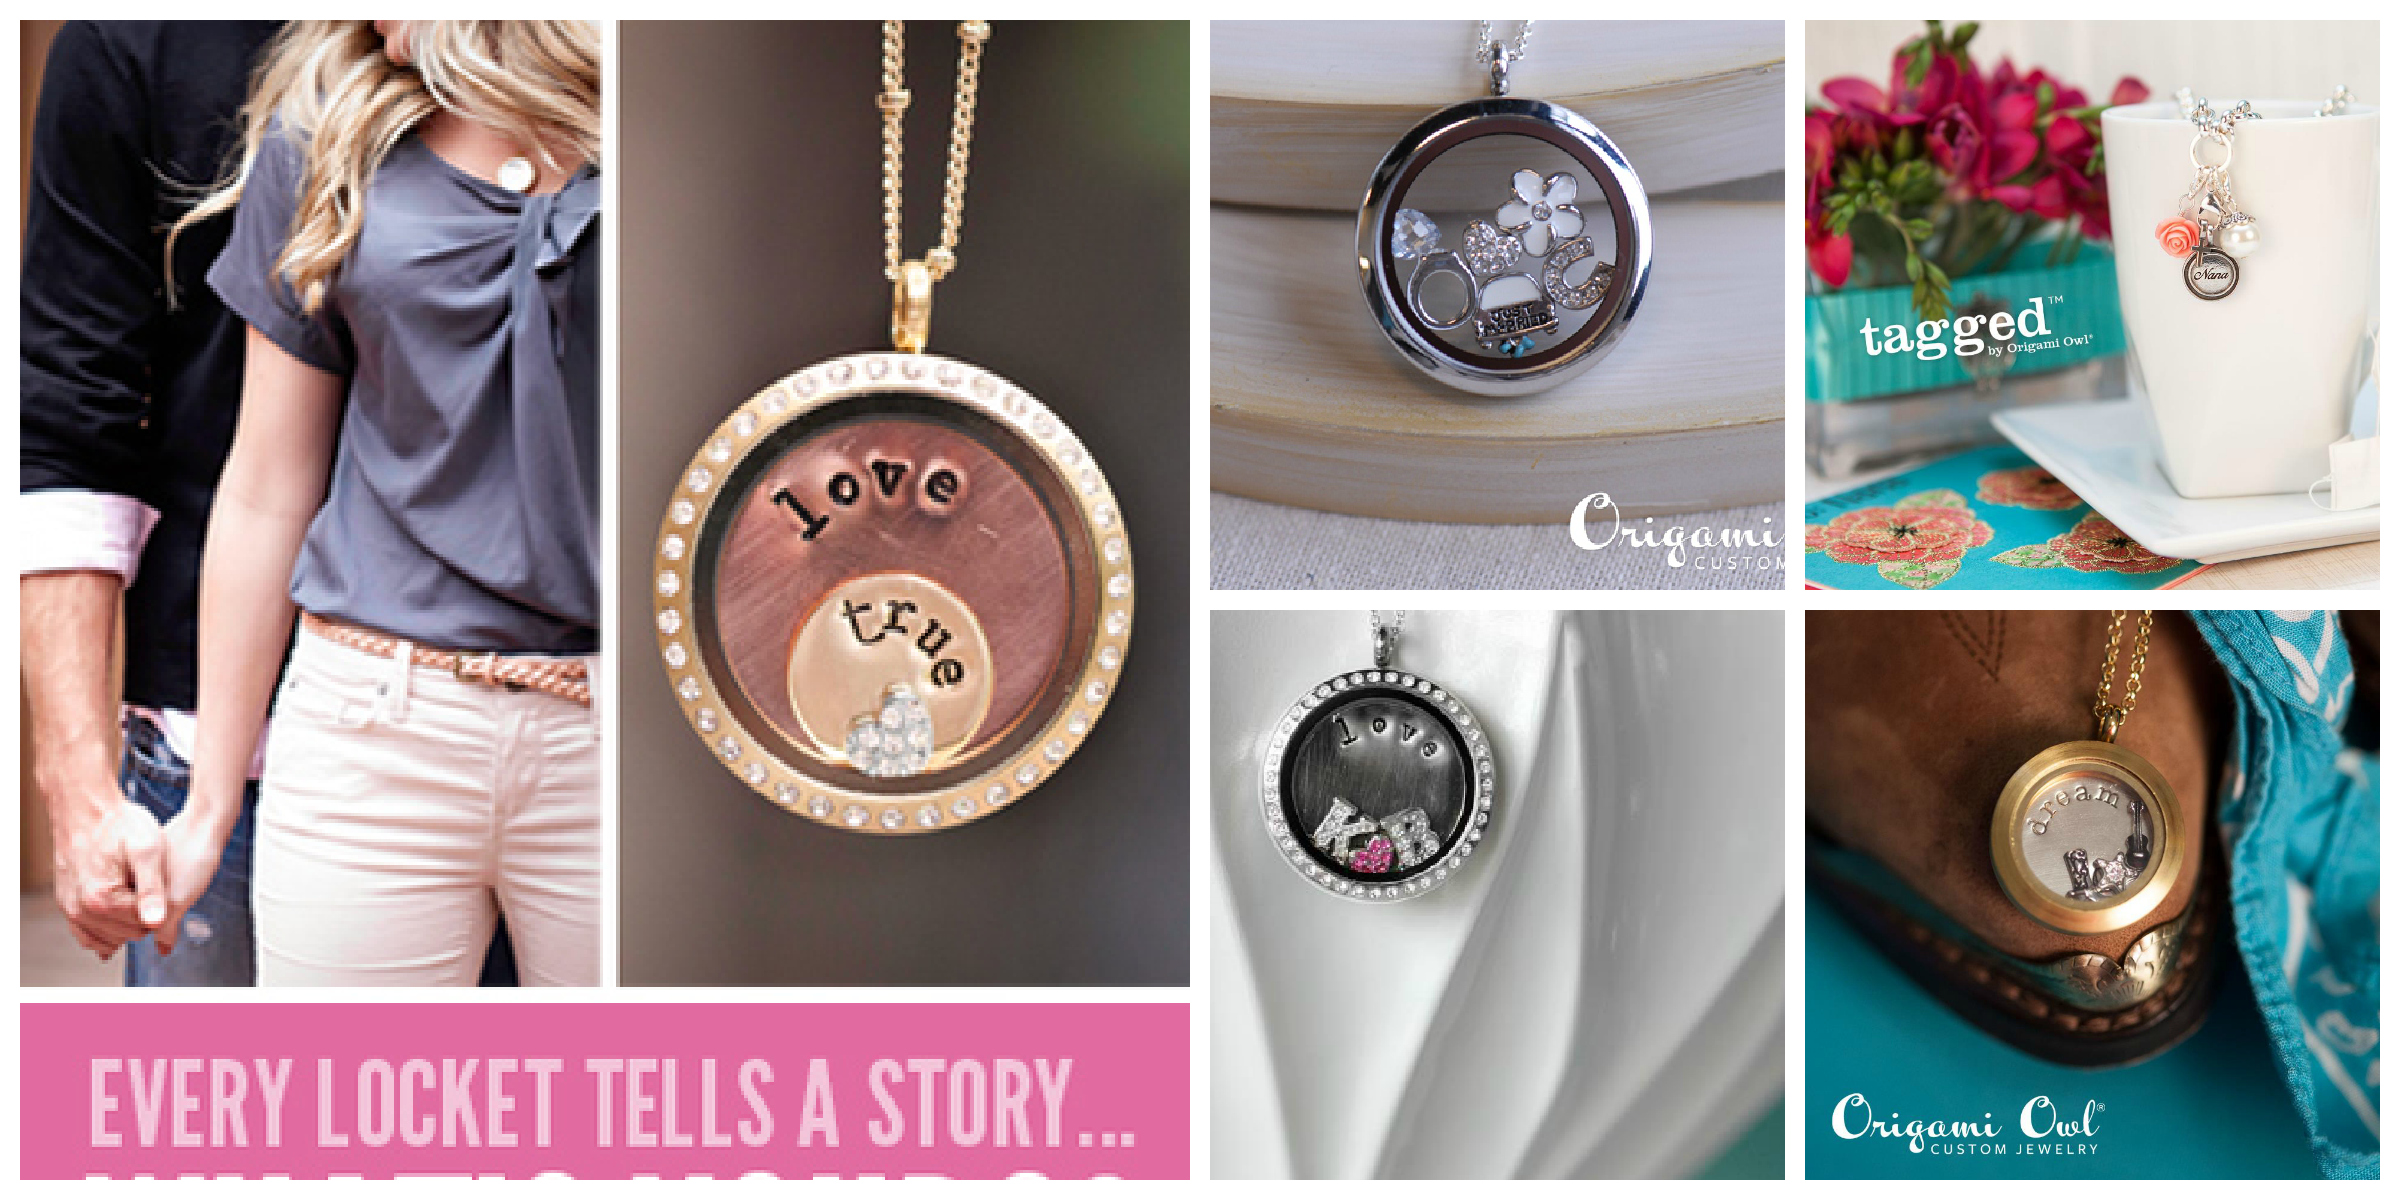 Origami Owl Chain Length Guide | Origami owl necklace, Origami owl ... | 1200x2400